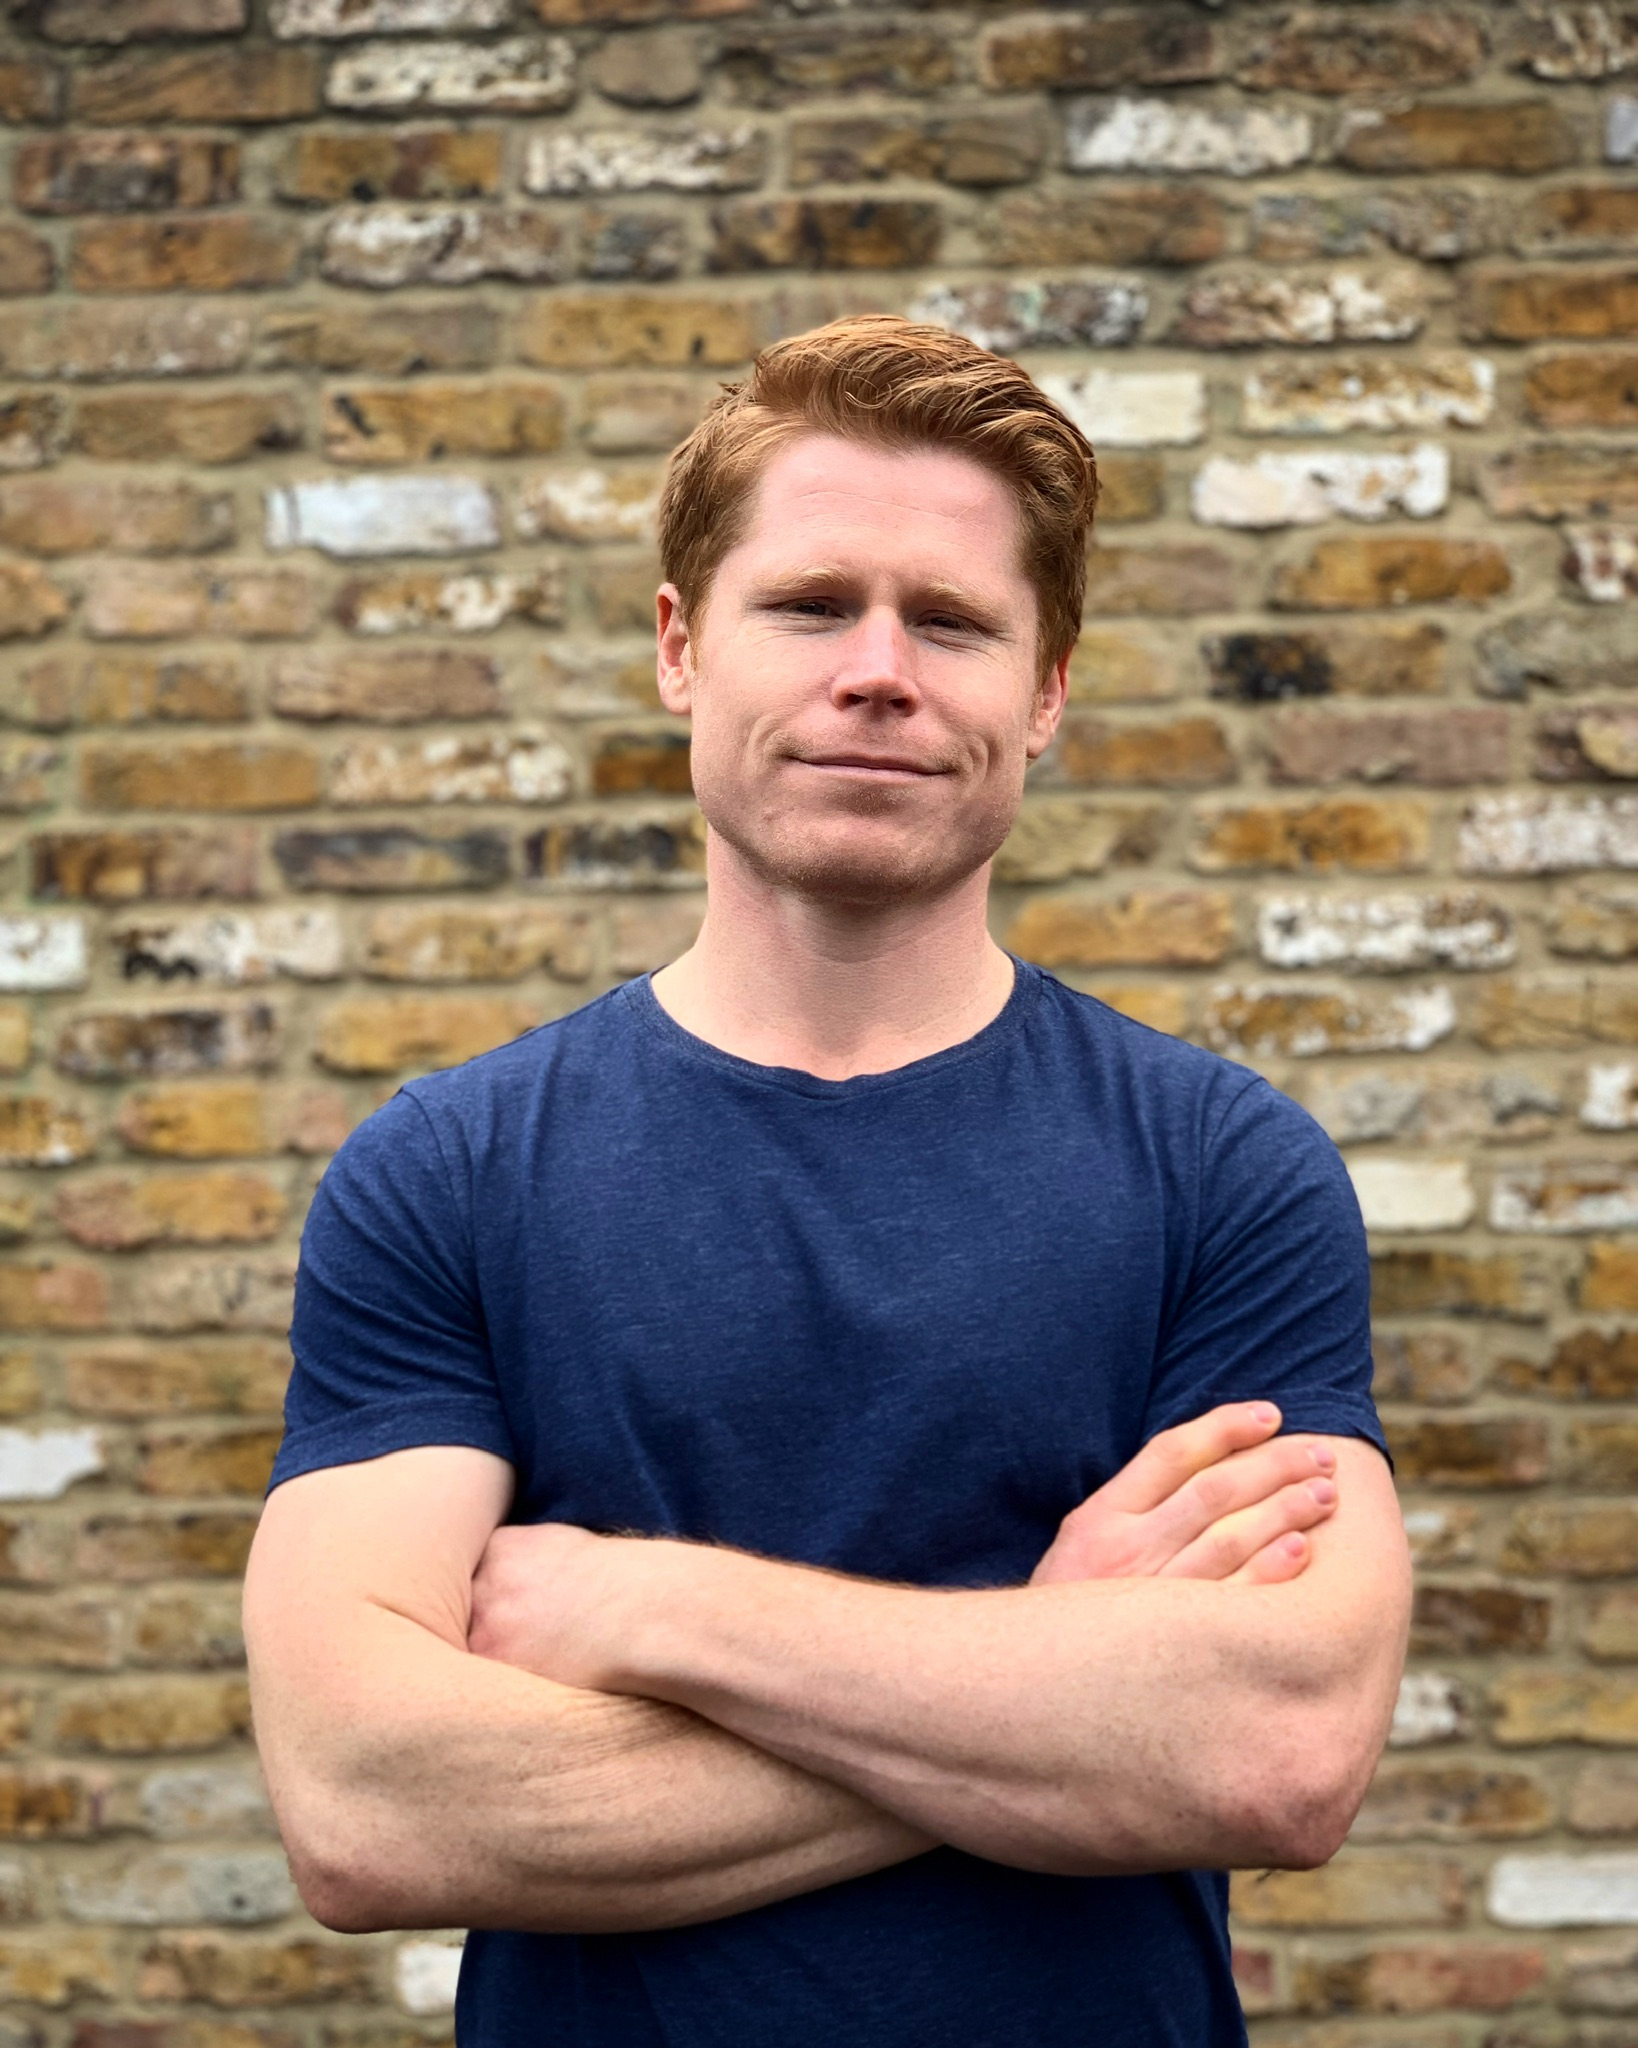 Hi, i'm Ben - My mission is to empower you to achieve a better baseline of health and wellbeing.Part of that means spreading the word that weight/fat loss can be made easy for anyone - with the right approach.I don't do strict, short-term diets, or hard, daily workouts - just simple, flexible, practical solutions that suit your goals and lifestyle.As far as i'm concerned, the process should be as enjoyable as possible, otherwise it won't be sustainable.Ben x